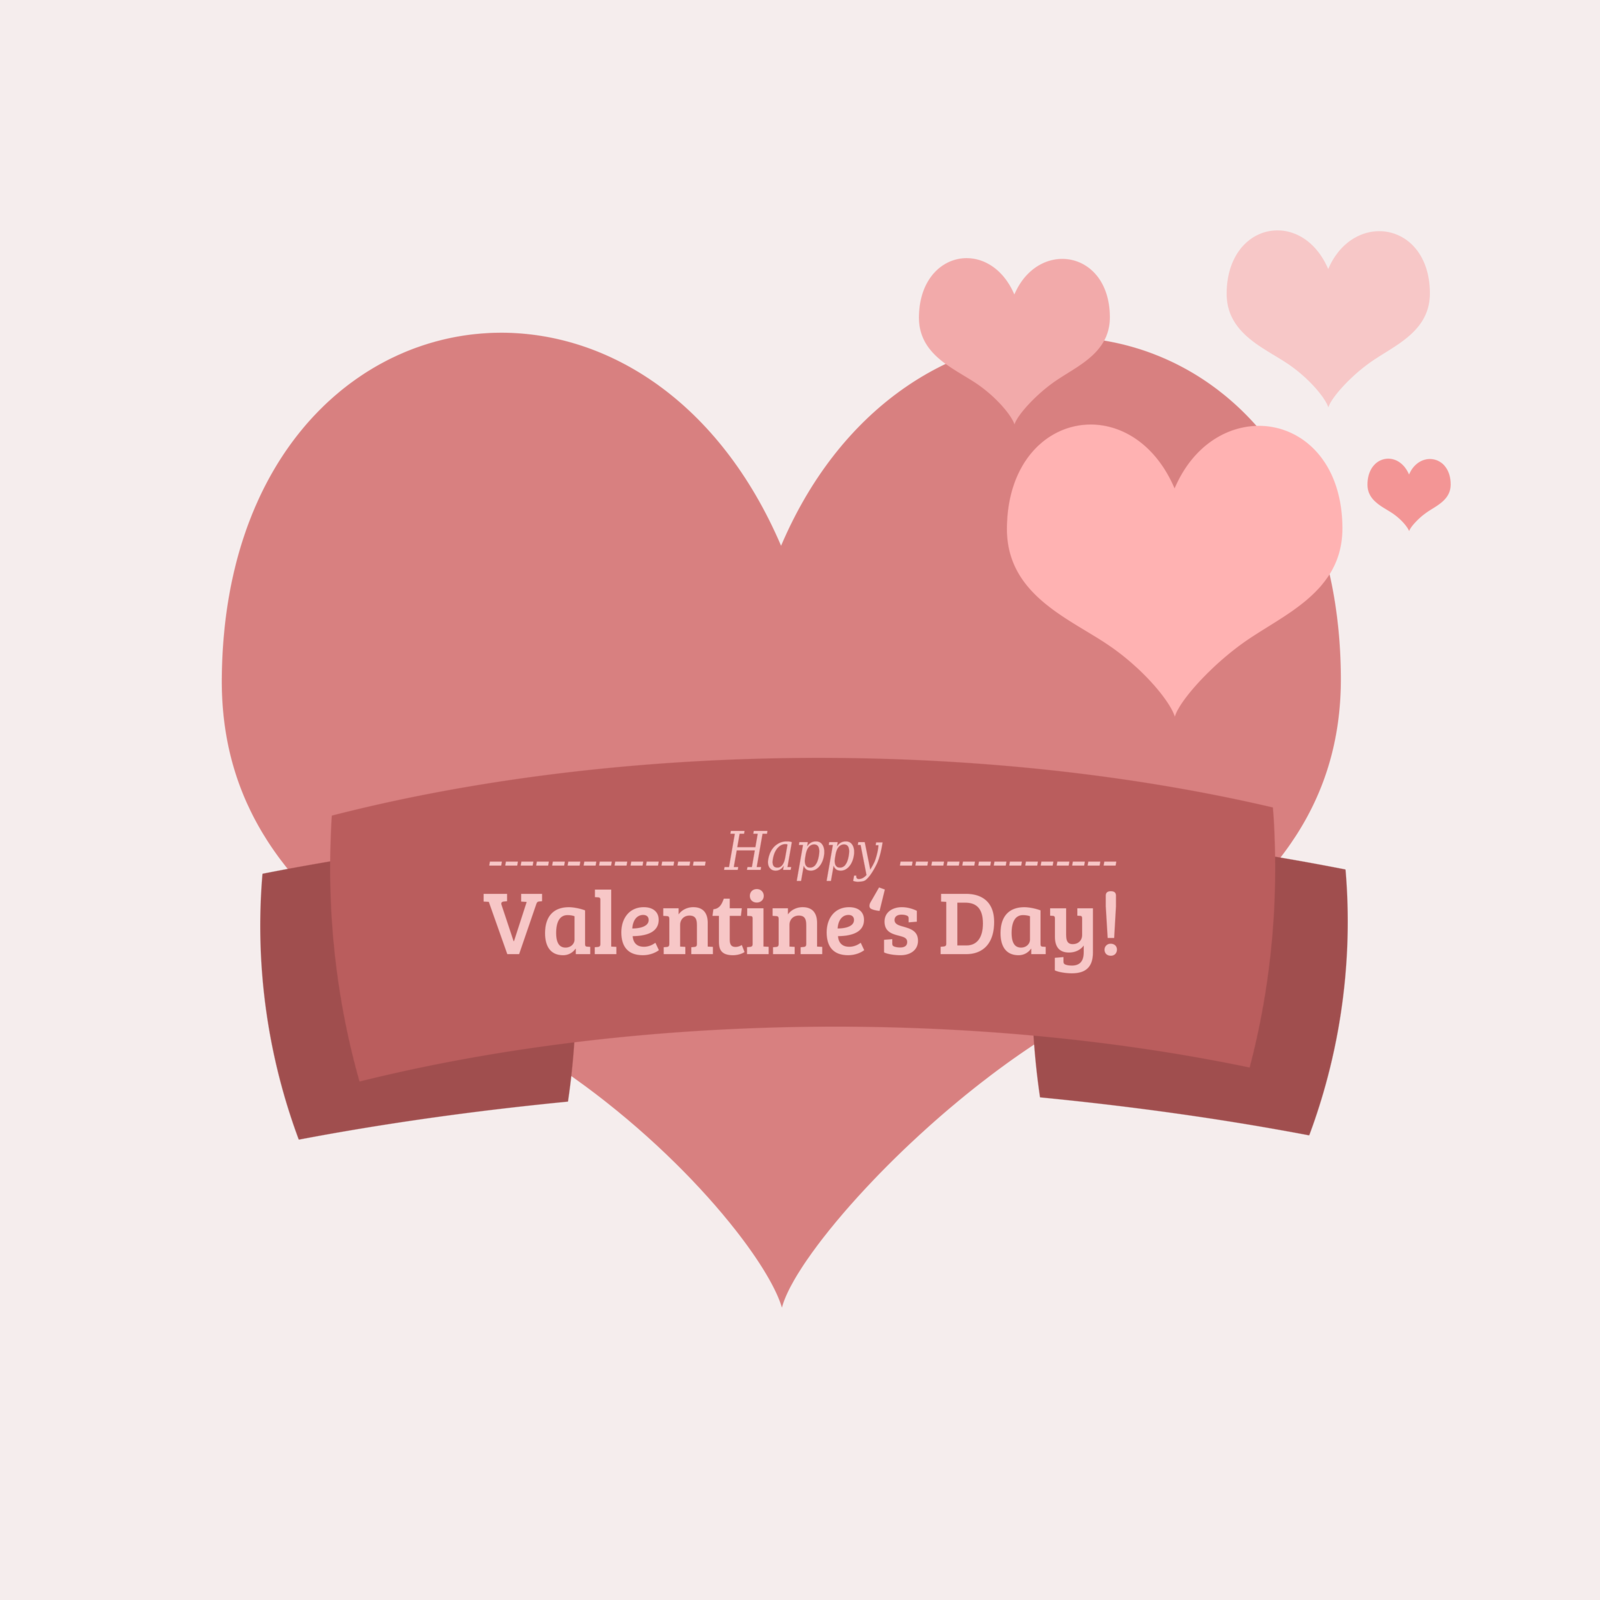 Clipart hearts workout. Sweet heart valentine day